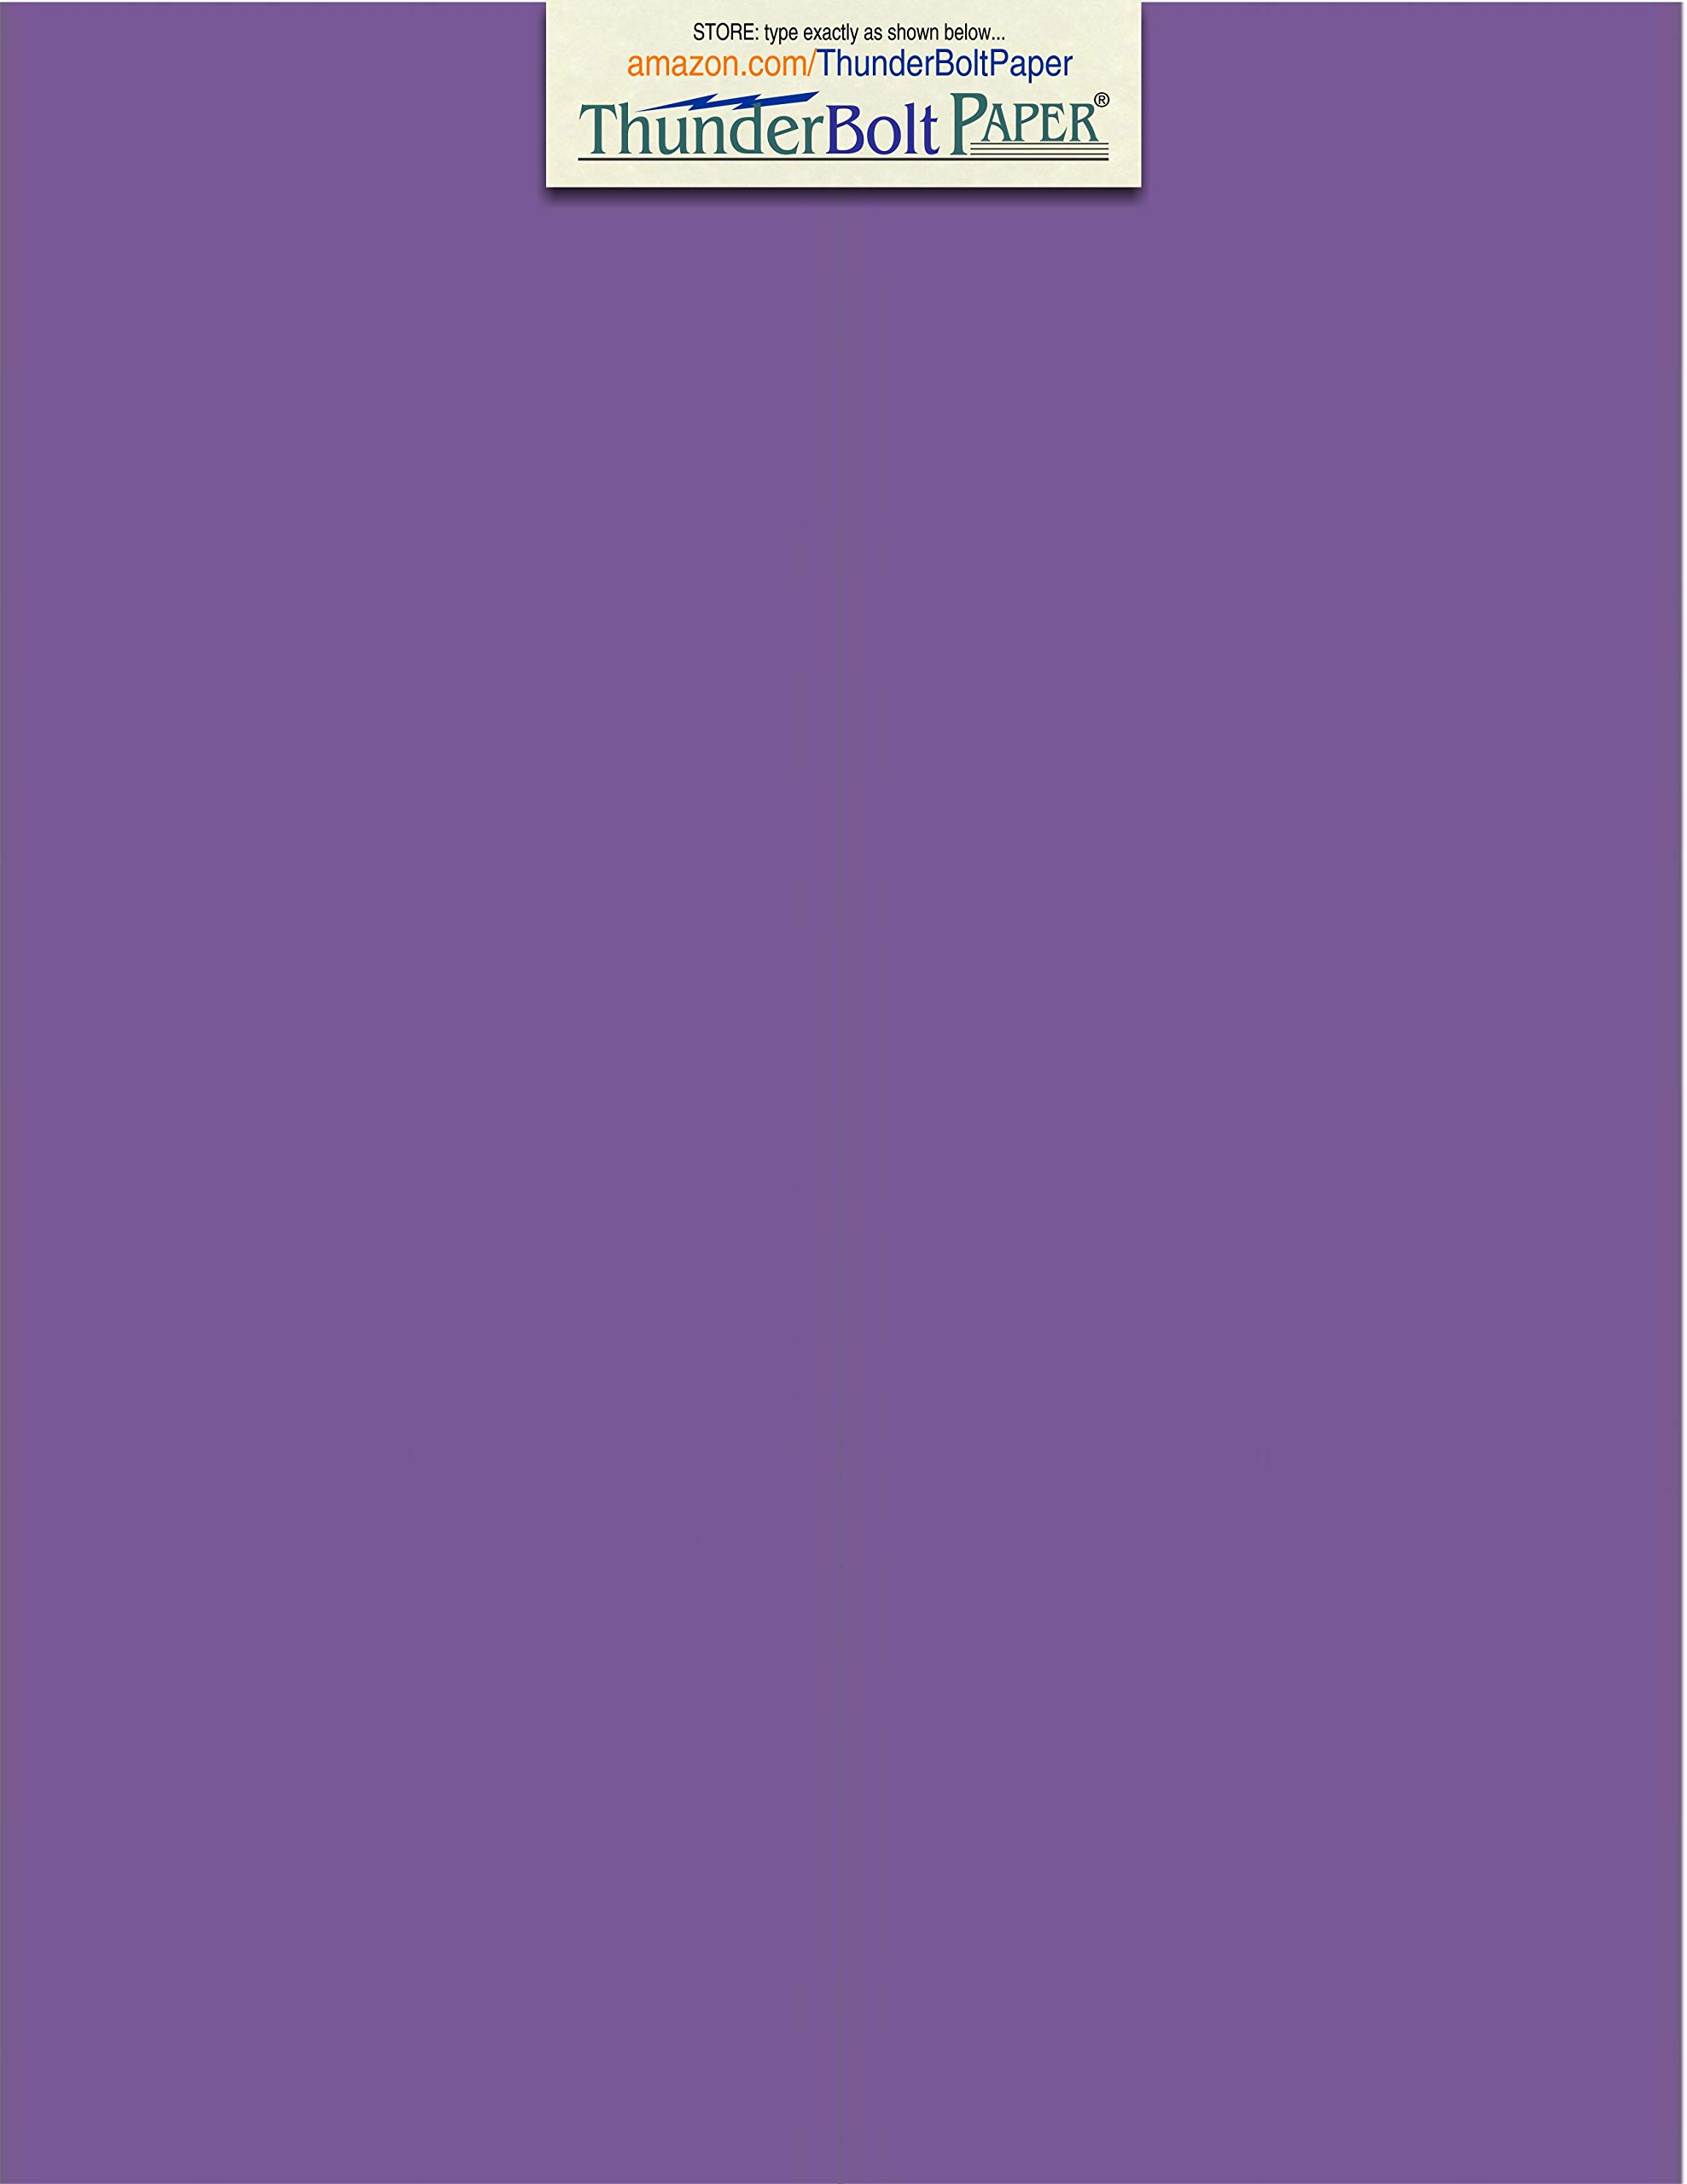 50 Bright Purple Grape 65# Cardstock Paper 8.5'' X 11'' (8.5X11 Inches) Standard Letter|Flyer Size - 65Cover/45Bond Light Weight Card Stock - Bright Printable Smooth Paper Surface